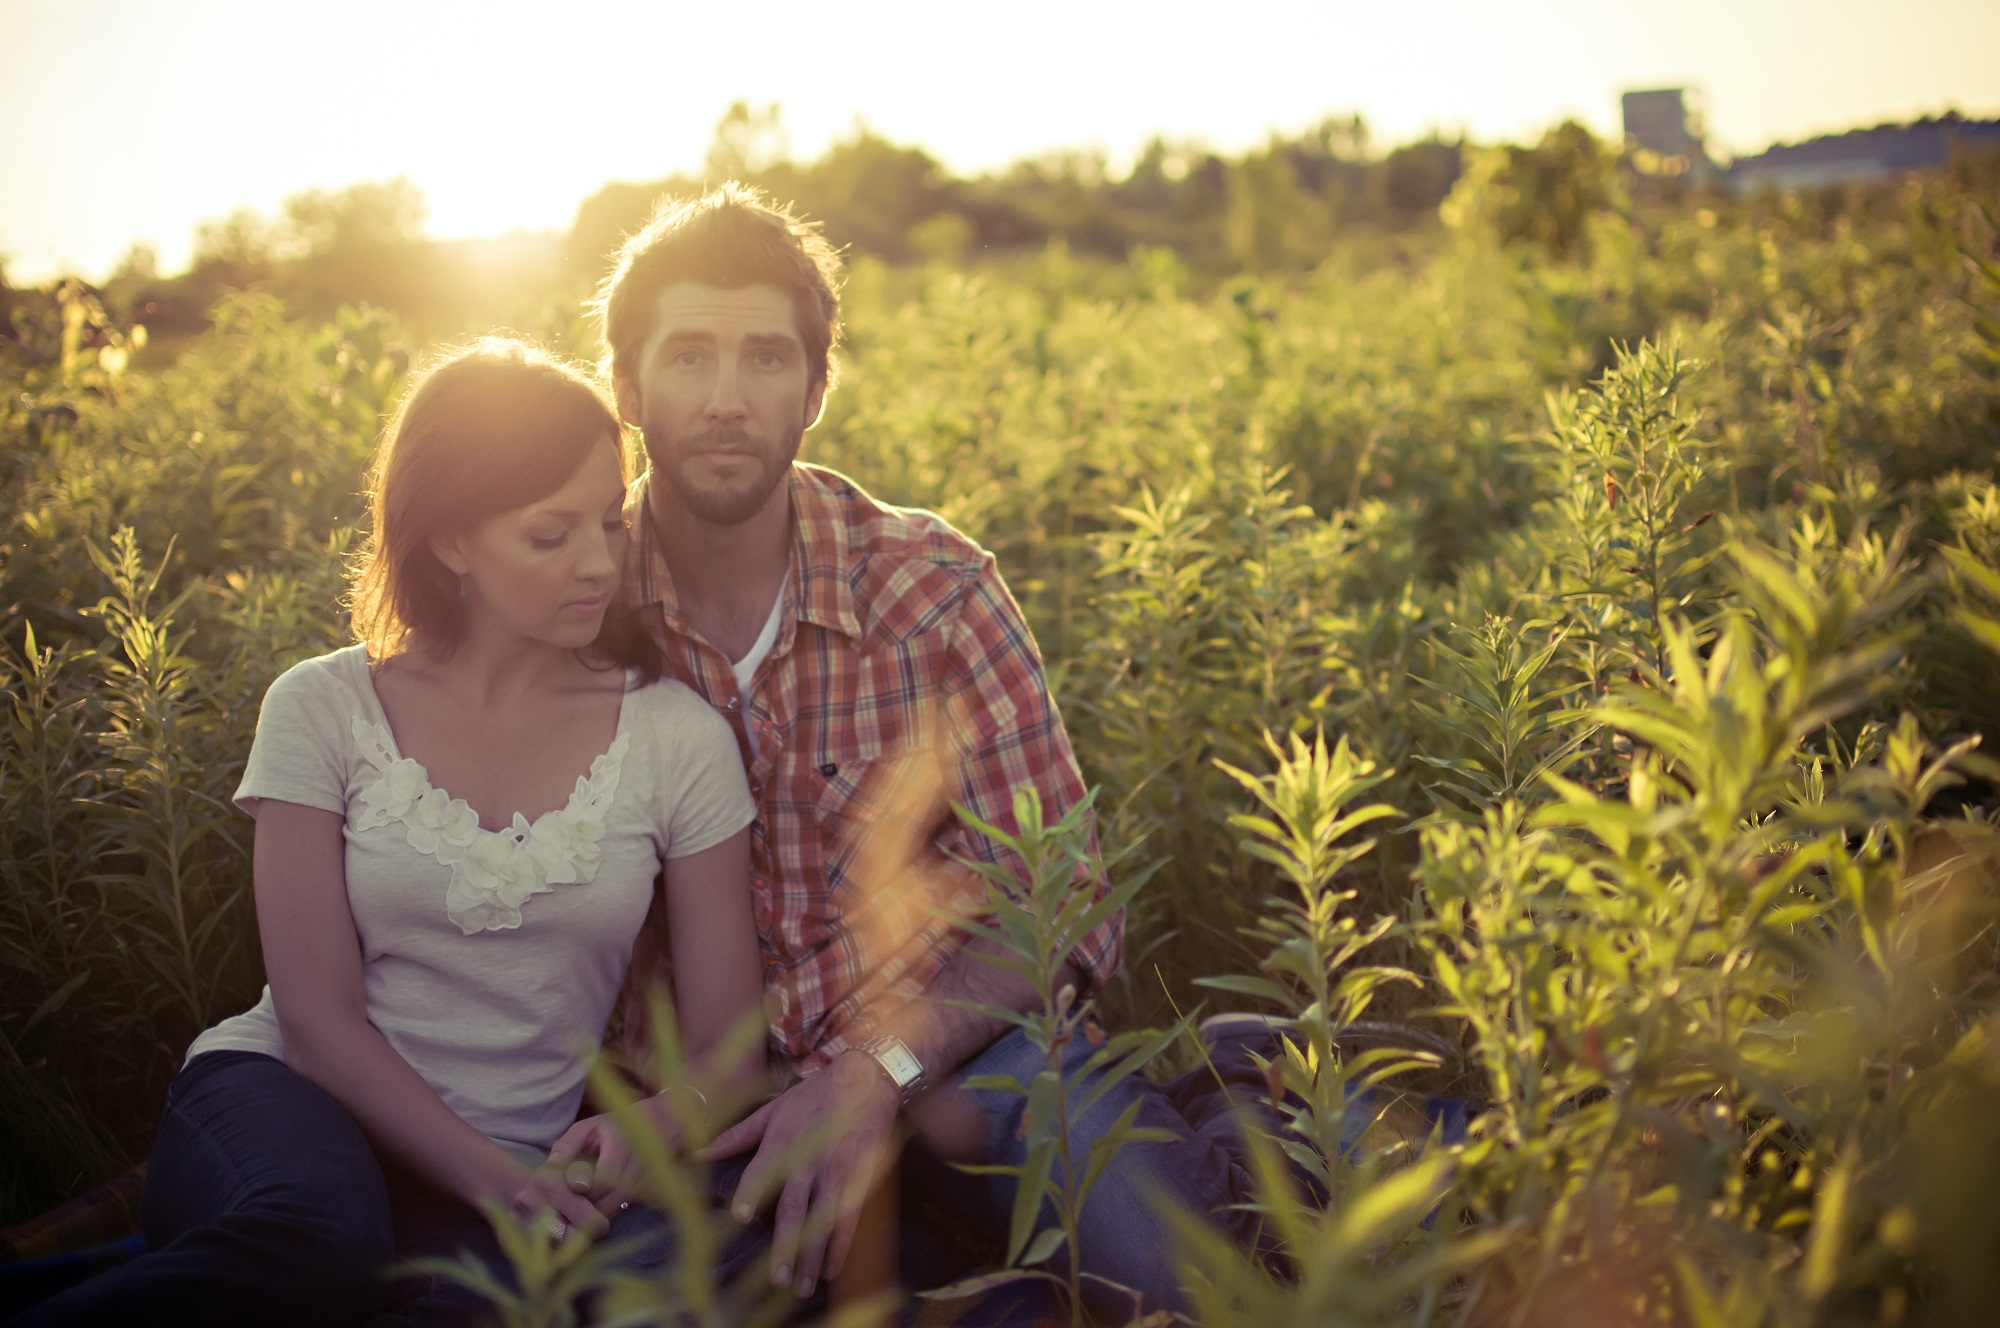 scott_webb_pexels_blur-couple-field-golden-hour.jpg